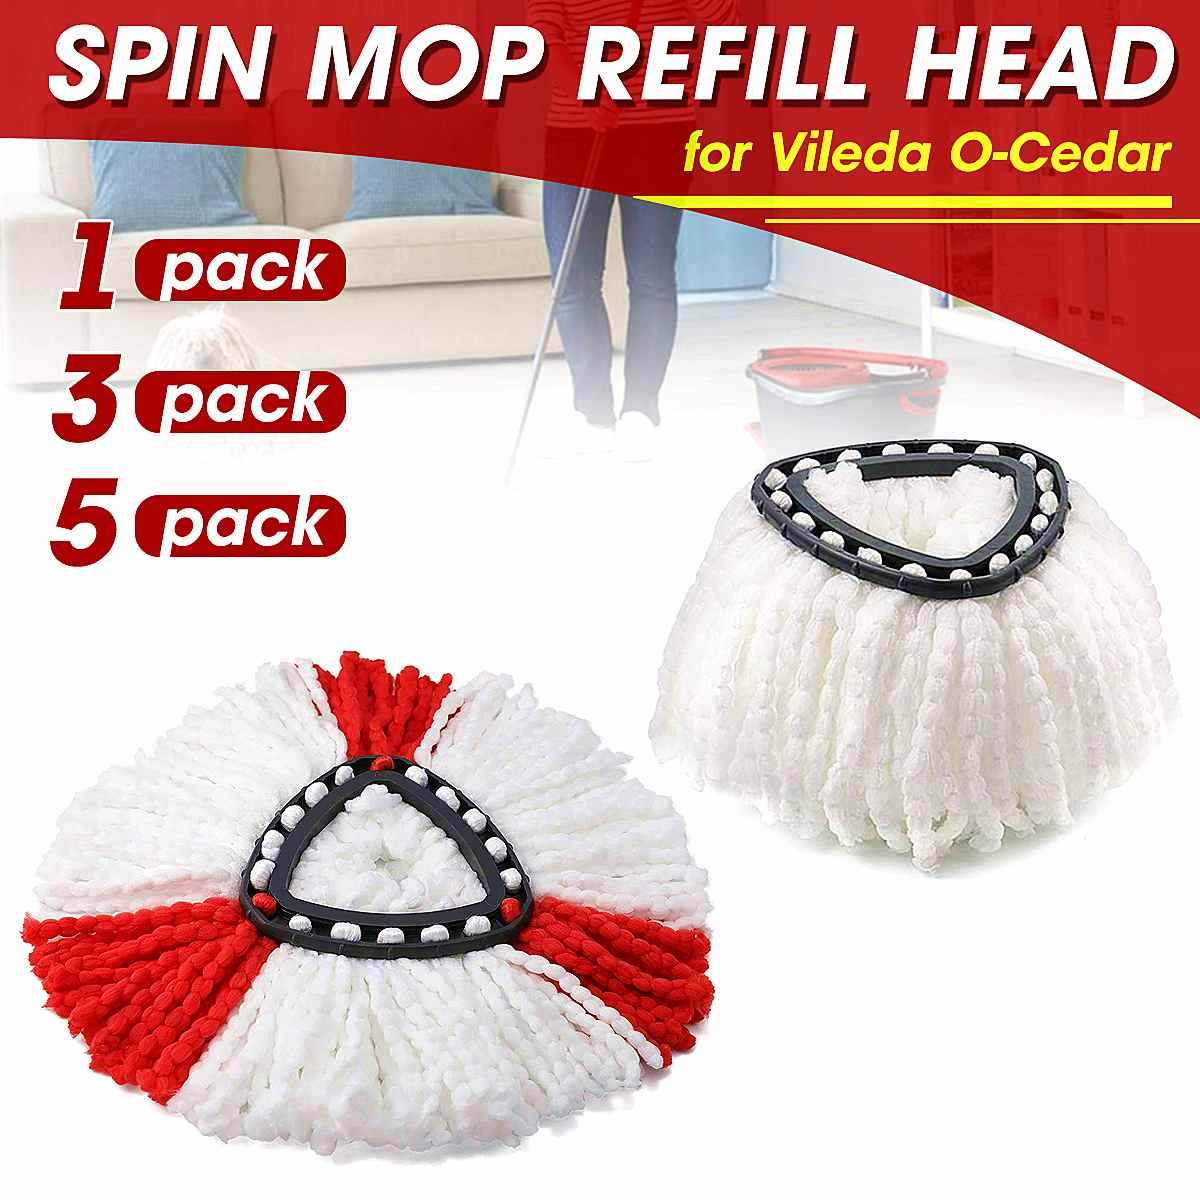 1/3/5pcs Microfiber Spin Mop Schoon Refill Vervanging Hoofd voor Vileda O-Ceder EasyWring Mop thuis Cleaning Tools Mop Accessoires